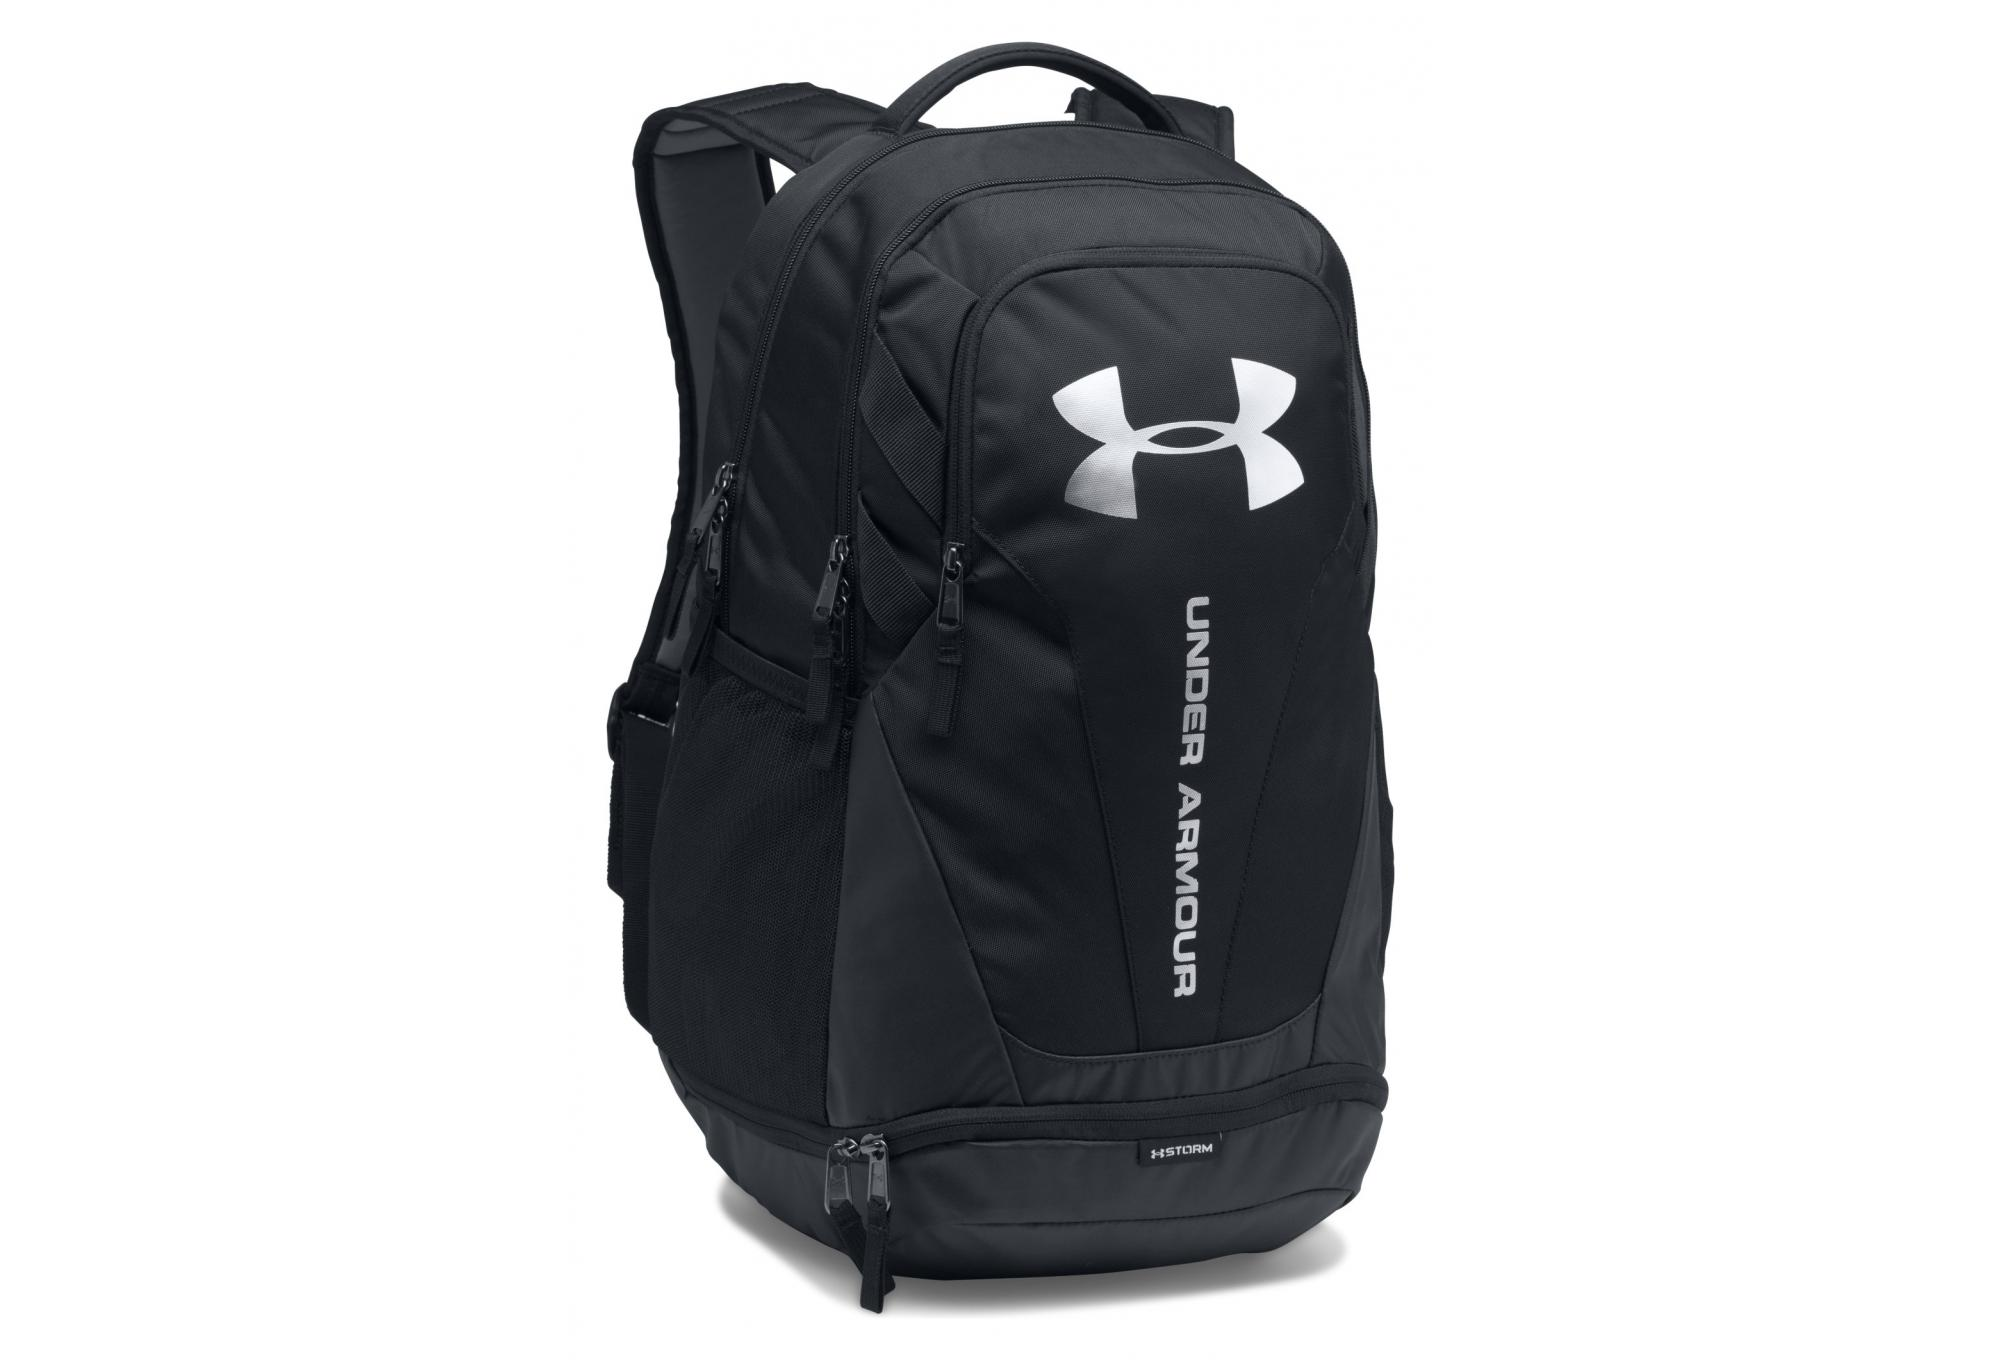 Buzo Ru harina  Under Armour Hustle 3.0 Backpack Black | Alltricks.com